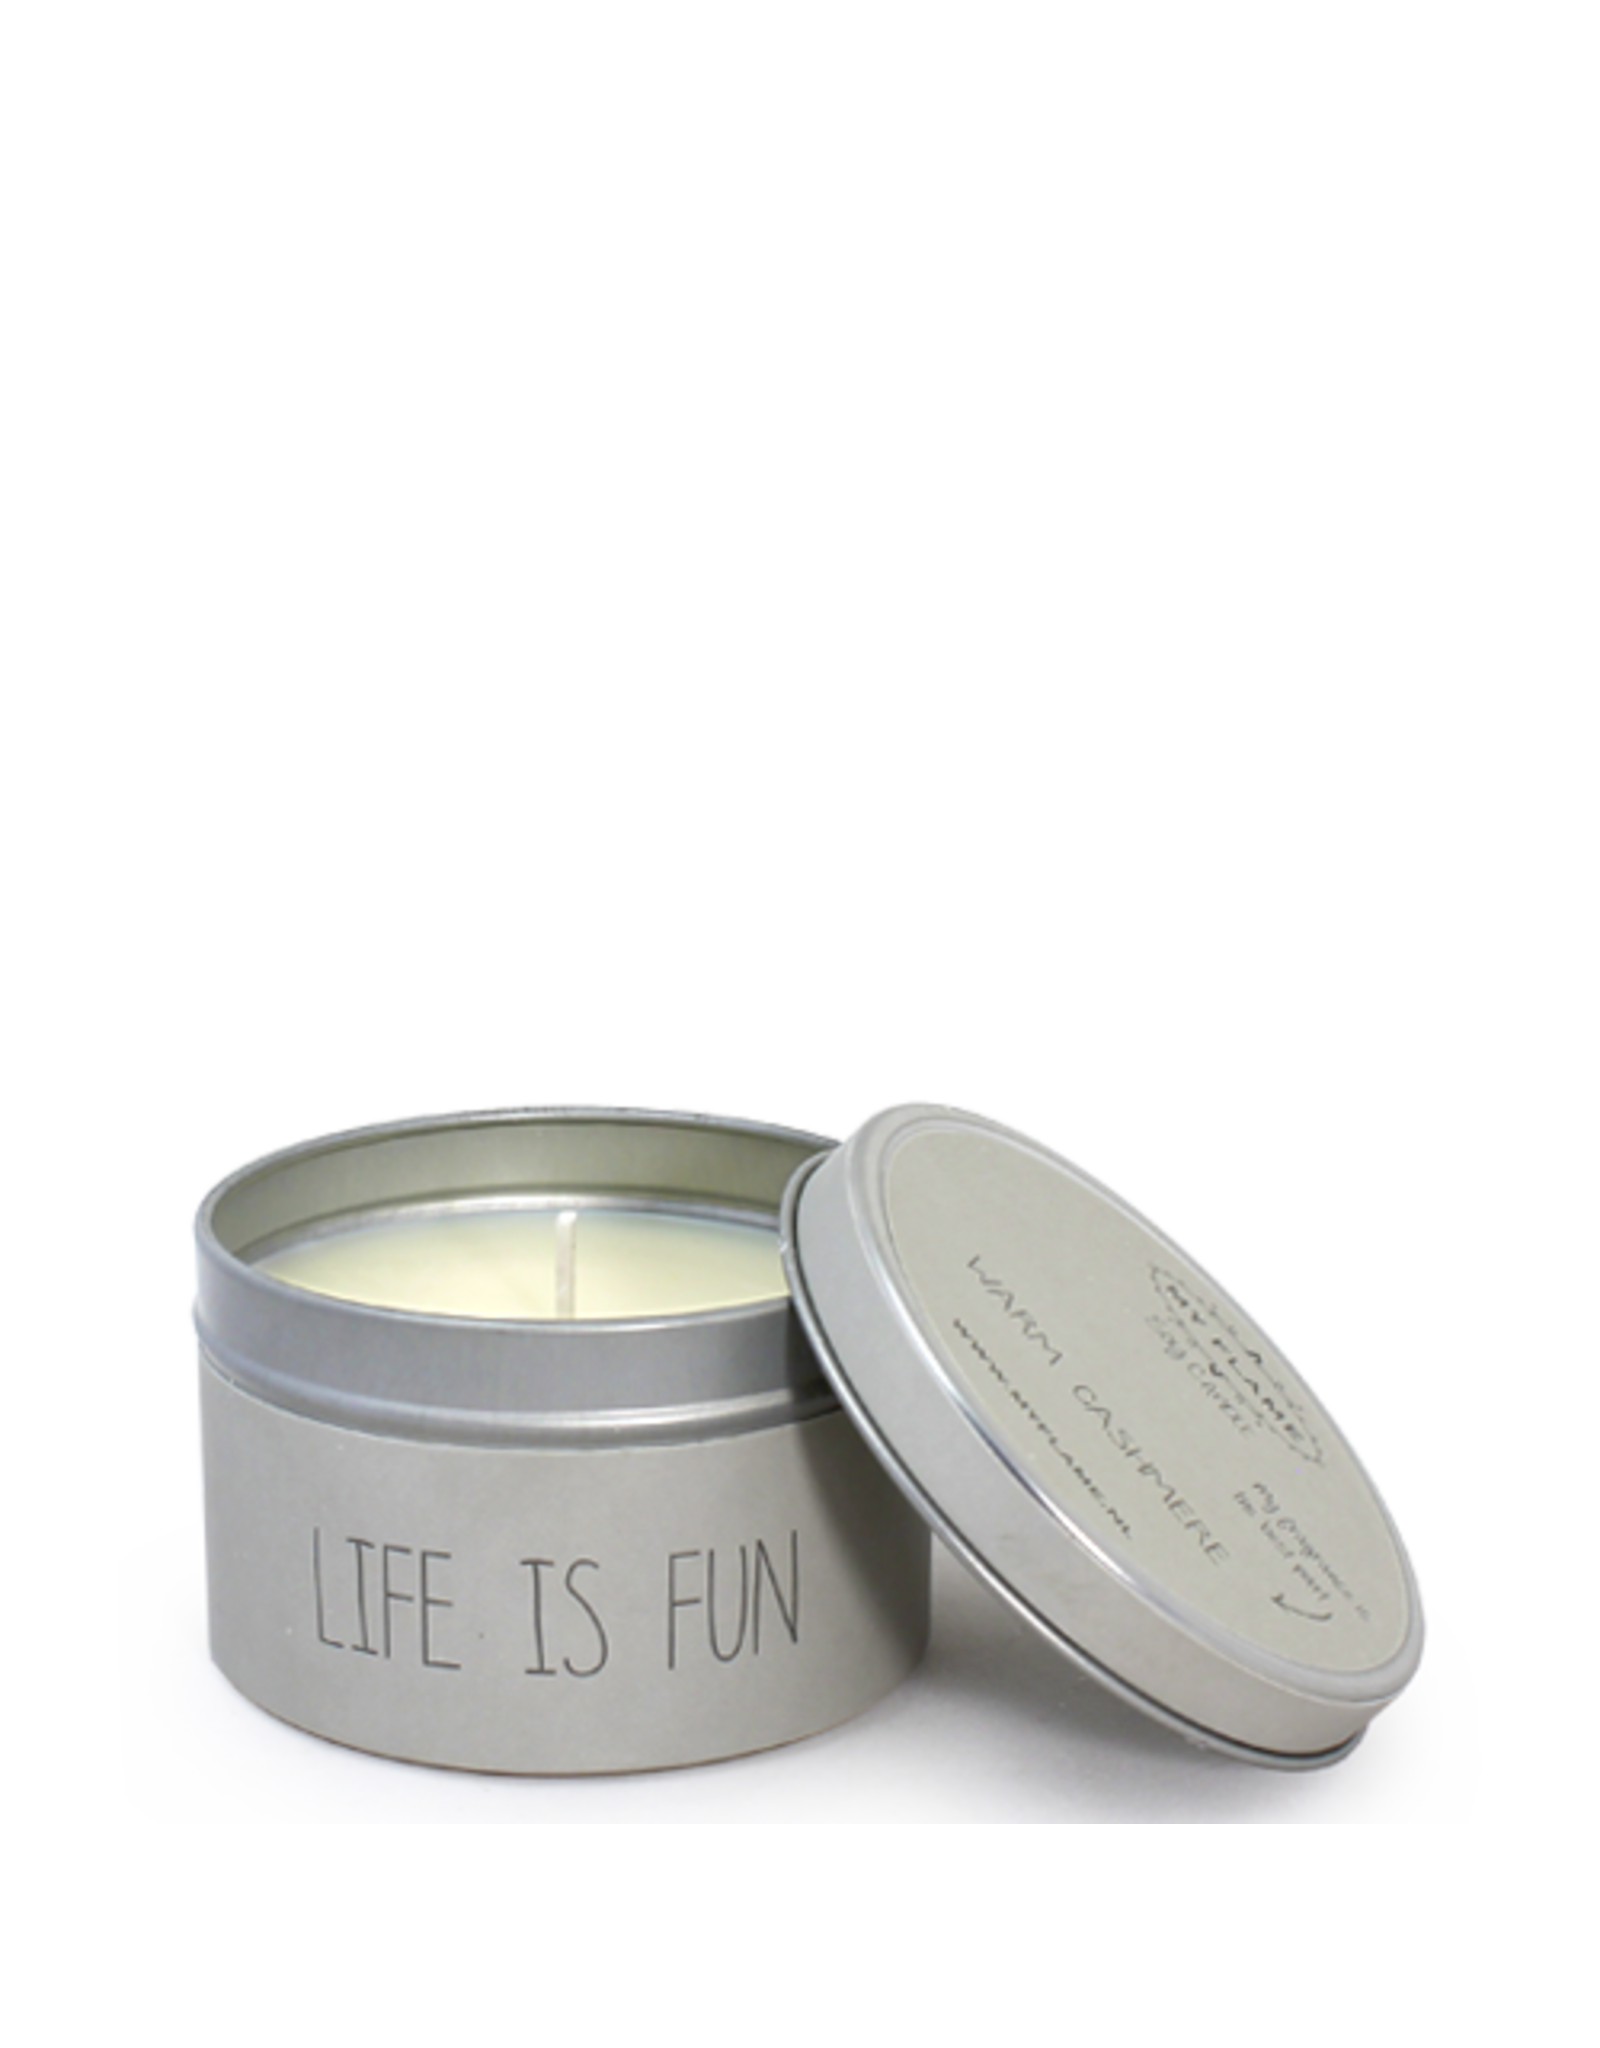 myflame My Flame. SOJAKAARS XS - LIFE IS FUN - GEUR: WARM CASHMERE